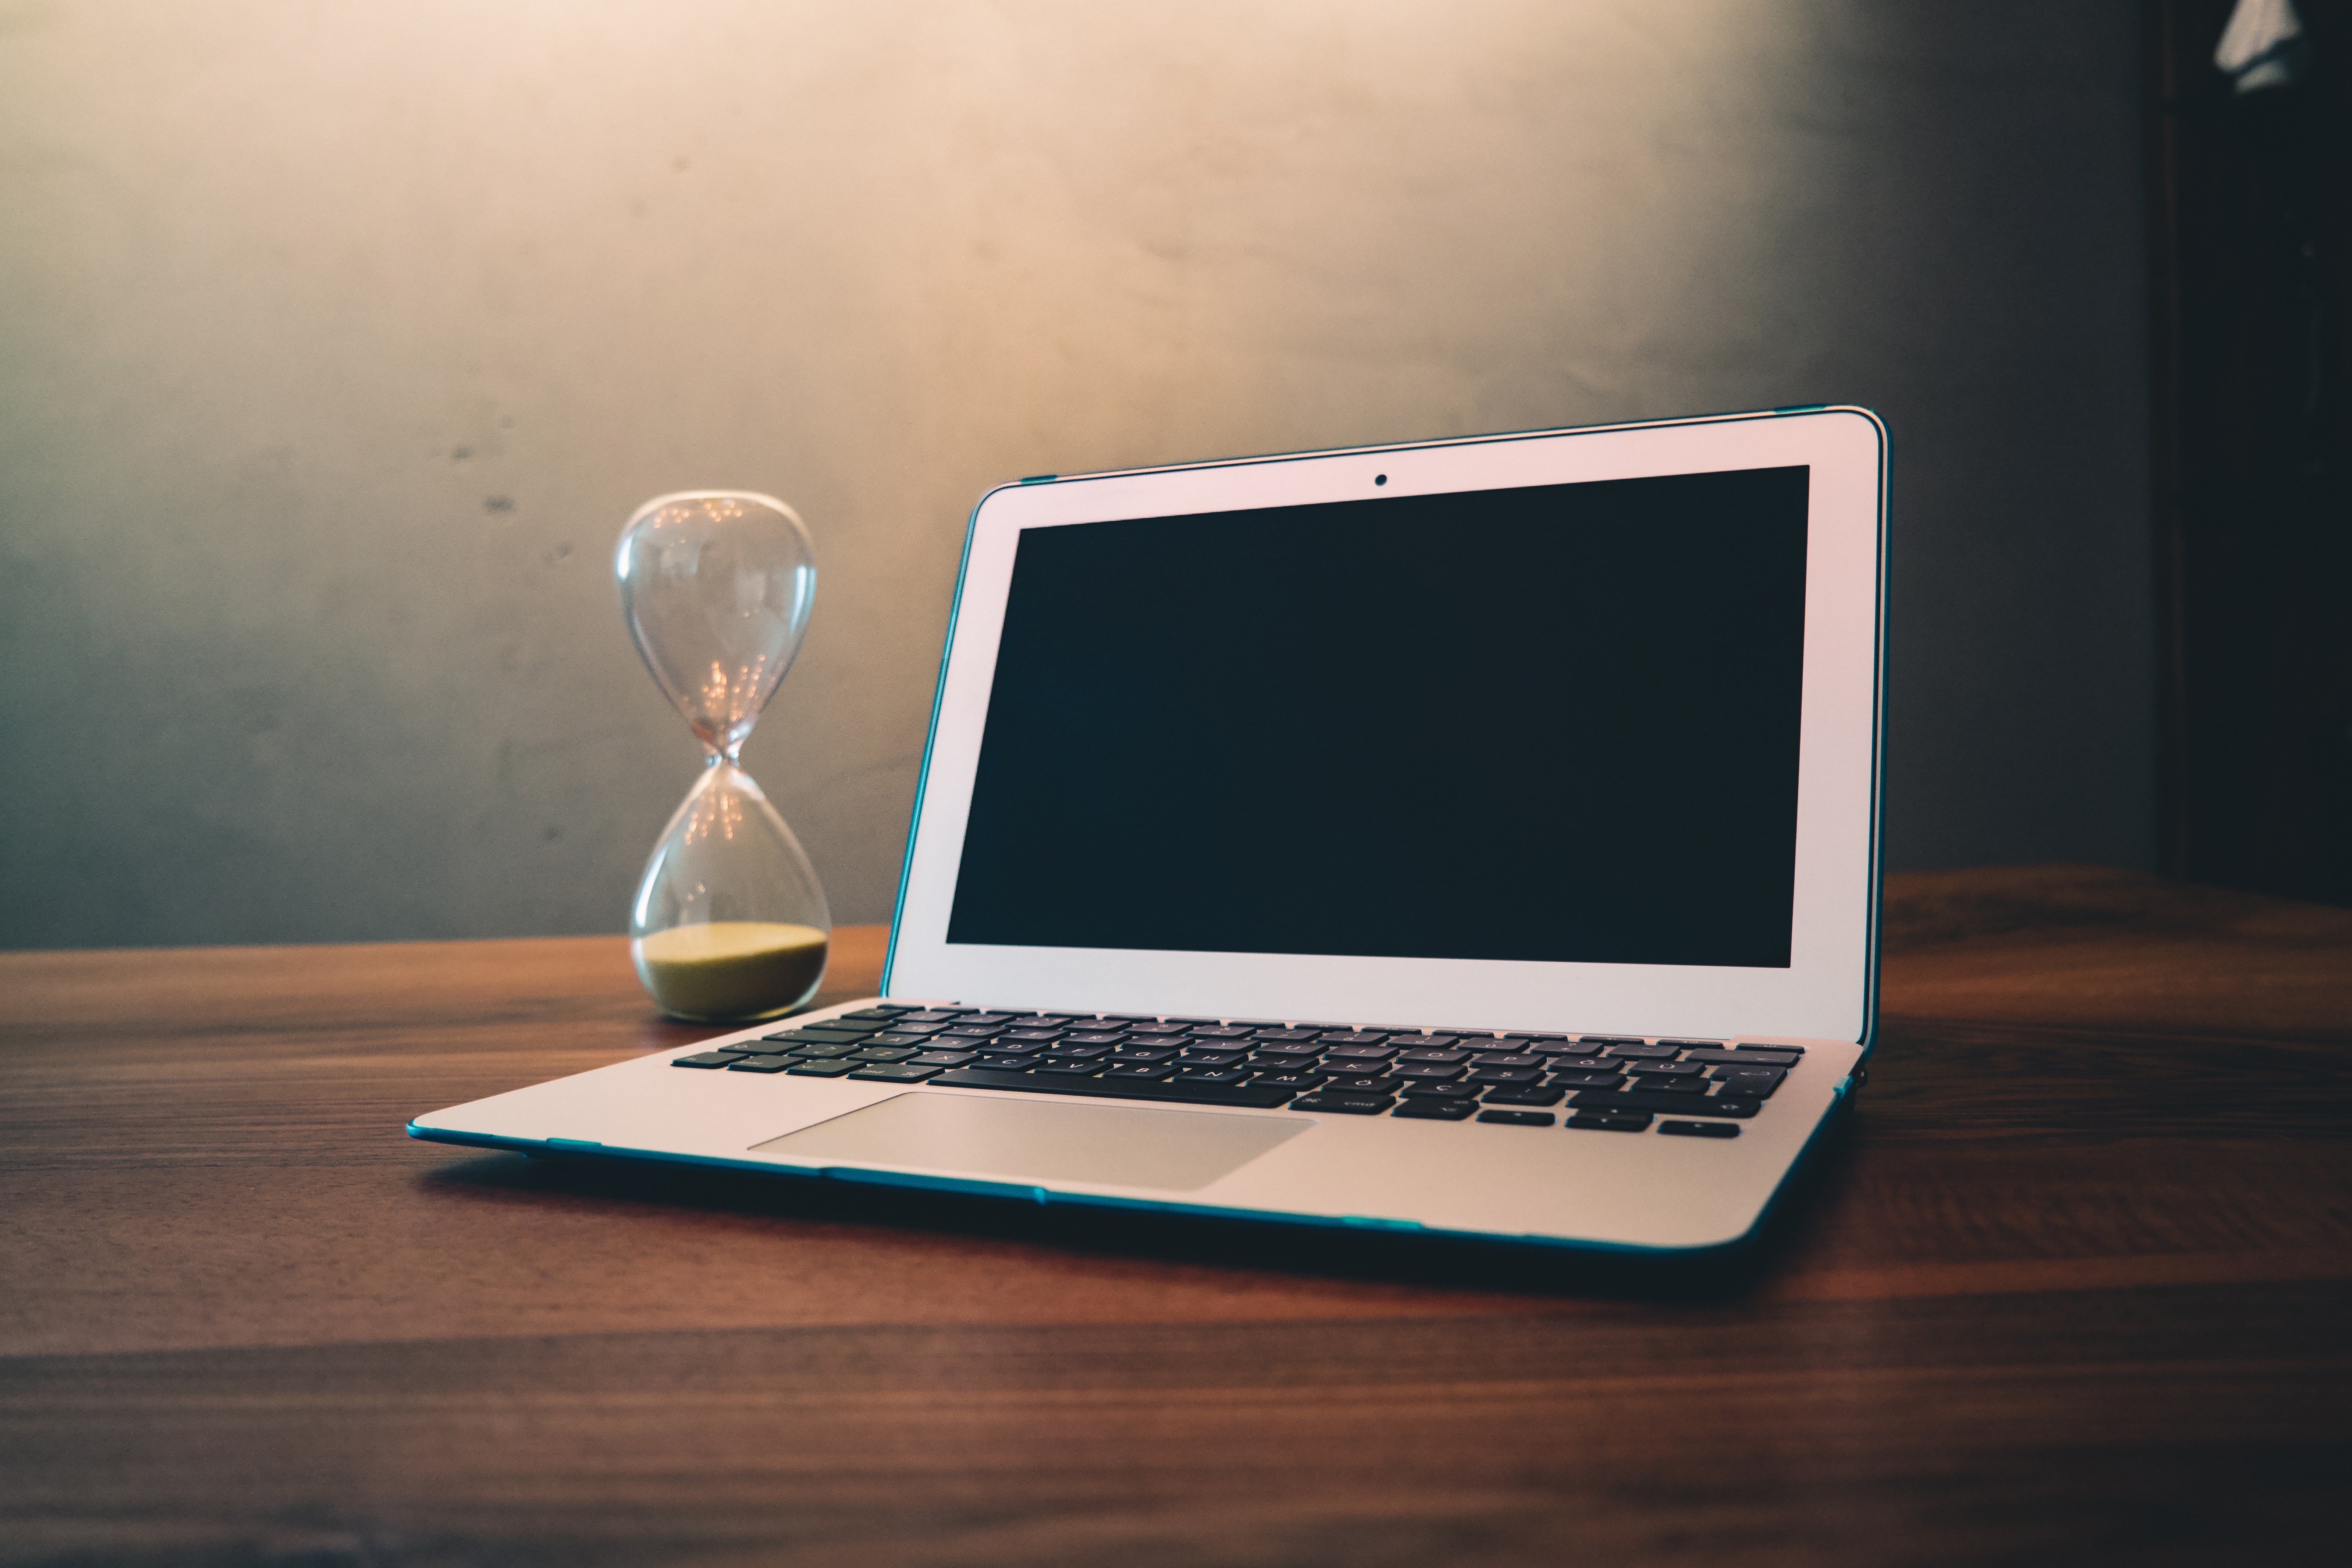 Computer Laptop Beside Hour Glass on Brown Wooden Surface, Business, Laptop, Wireless, Technology, HQ Photo